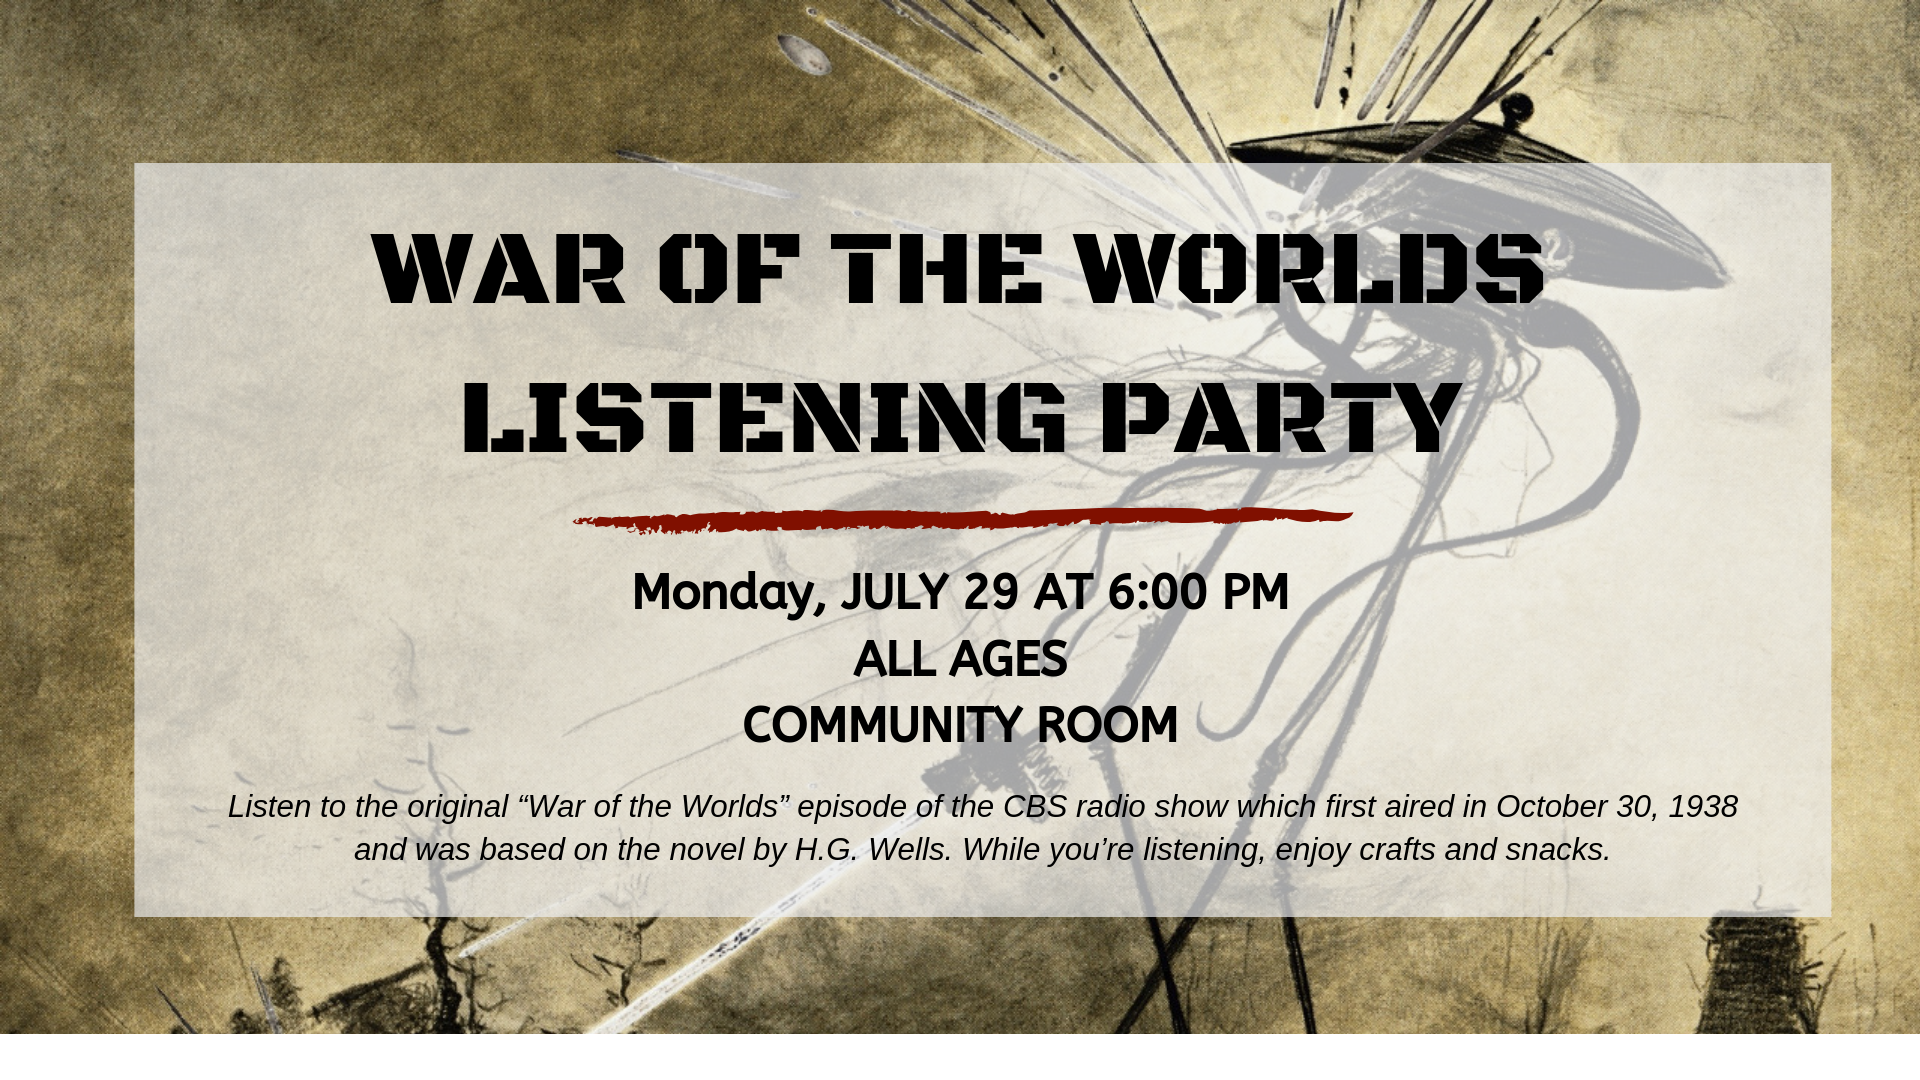 War of the Worlds Listening Party